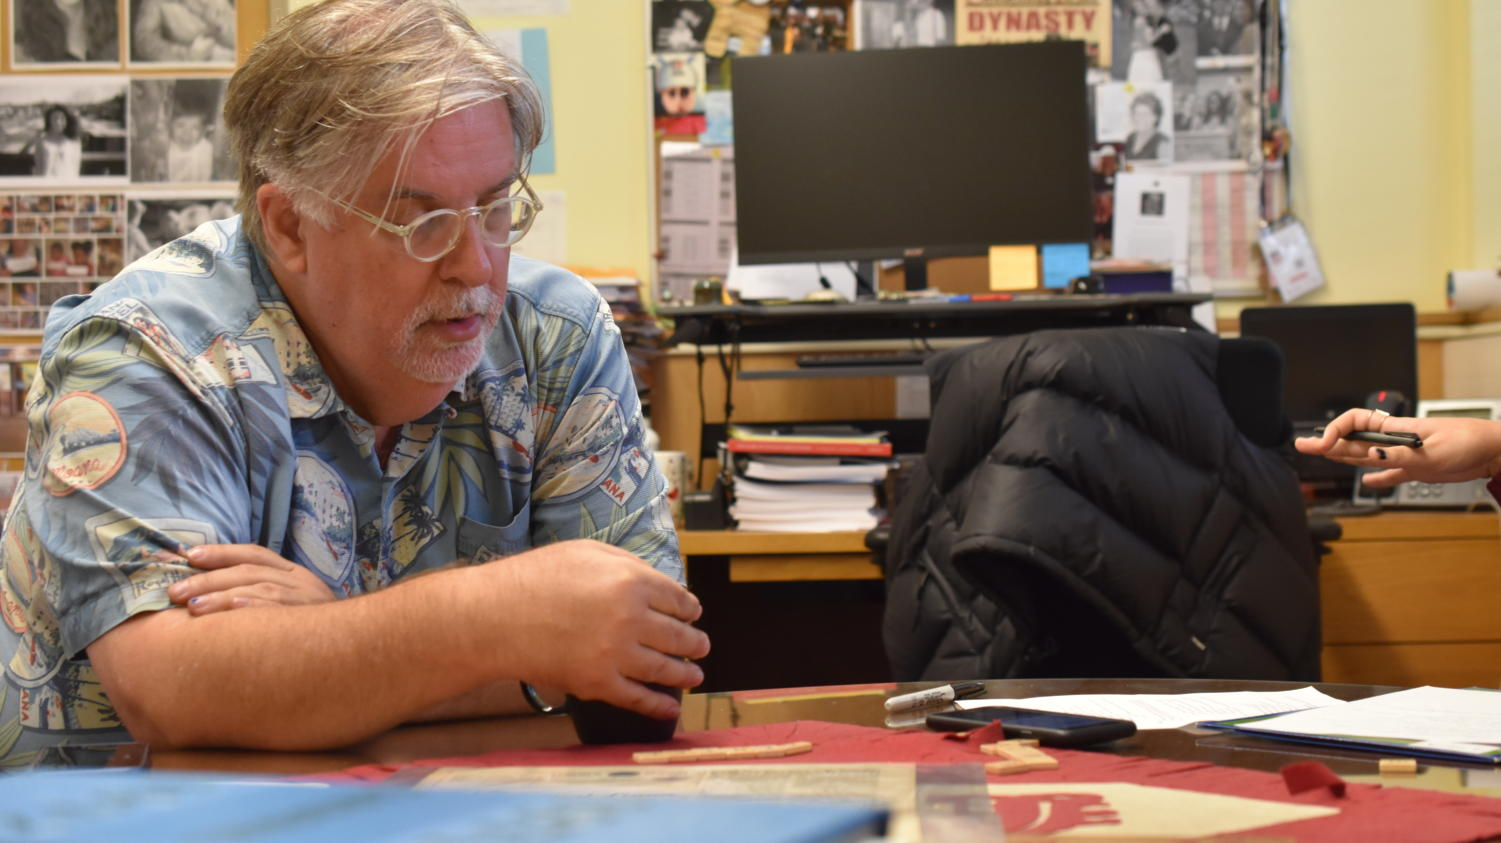 Matt Groening reflecting upon his highschool experience with Cardinal Times Staff.